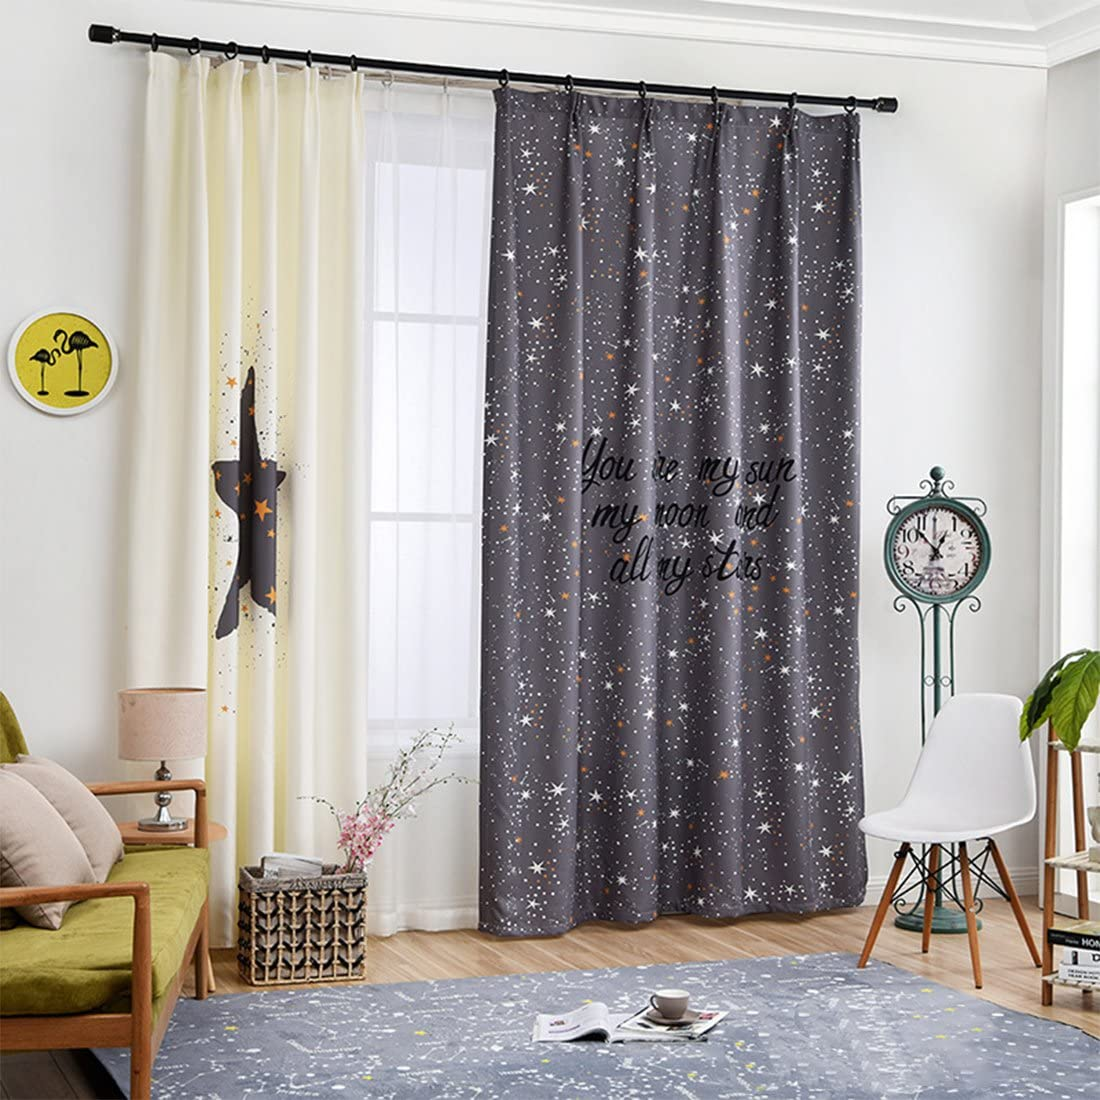 Gwell Childrens Room Curtains Star Design Eyelet Curtain Decorative Curtain for Living Room Bedroom Pack of 1 245x140 HxB St/ück x1 Linker Schal Nur